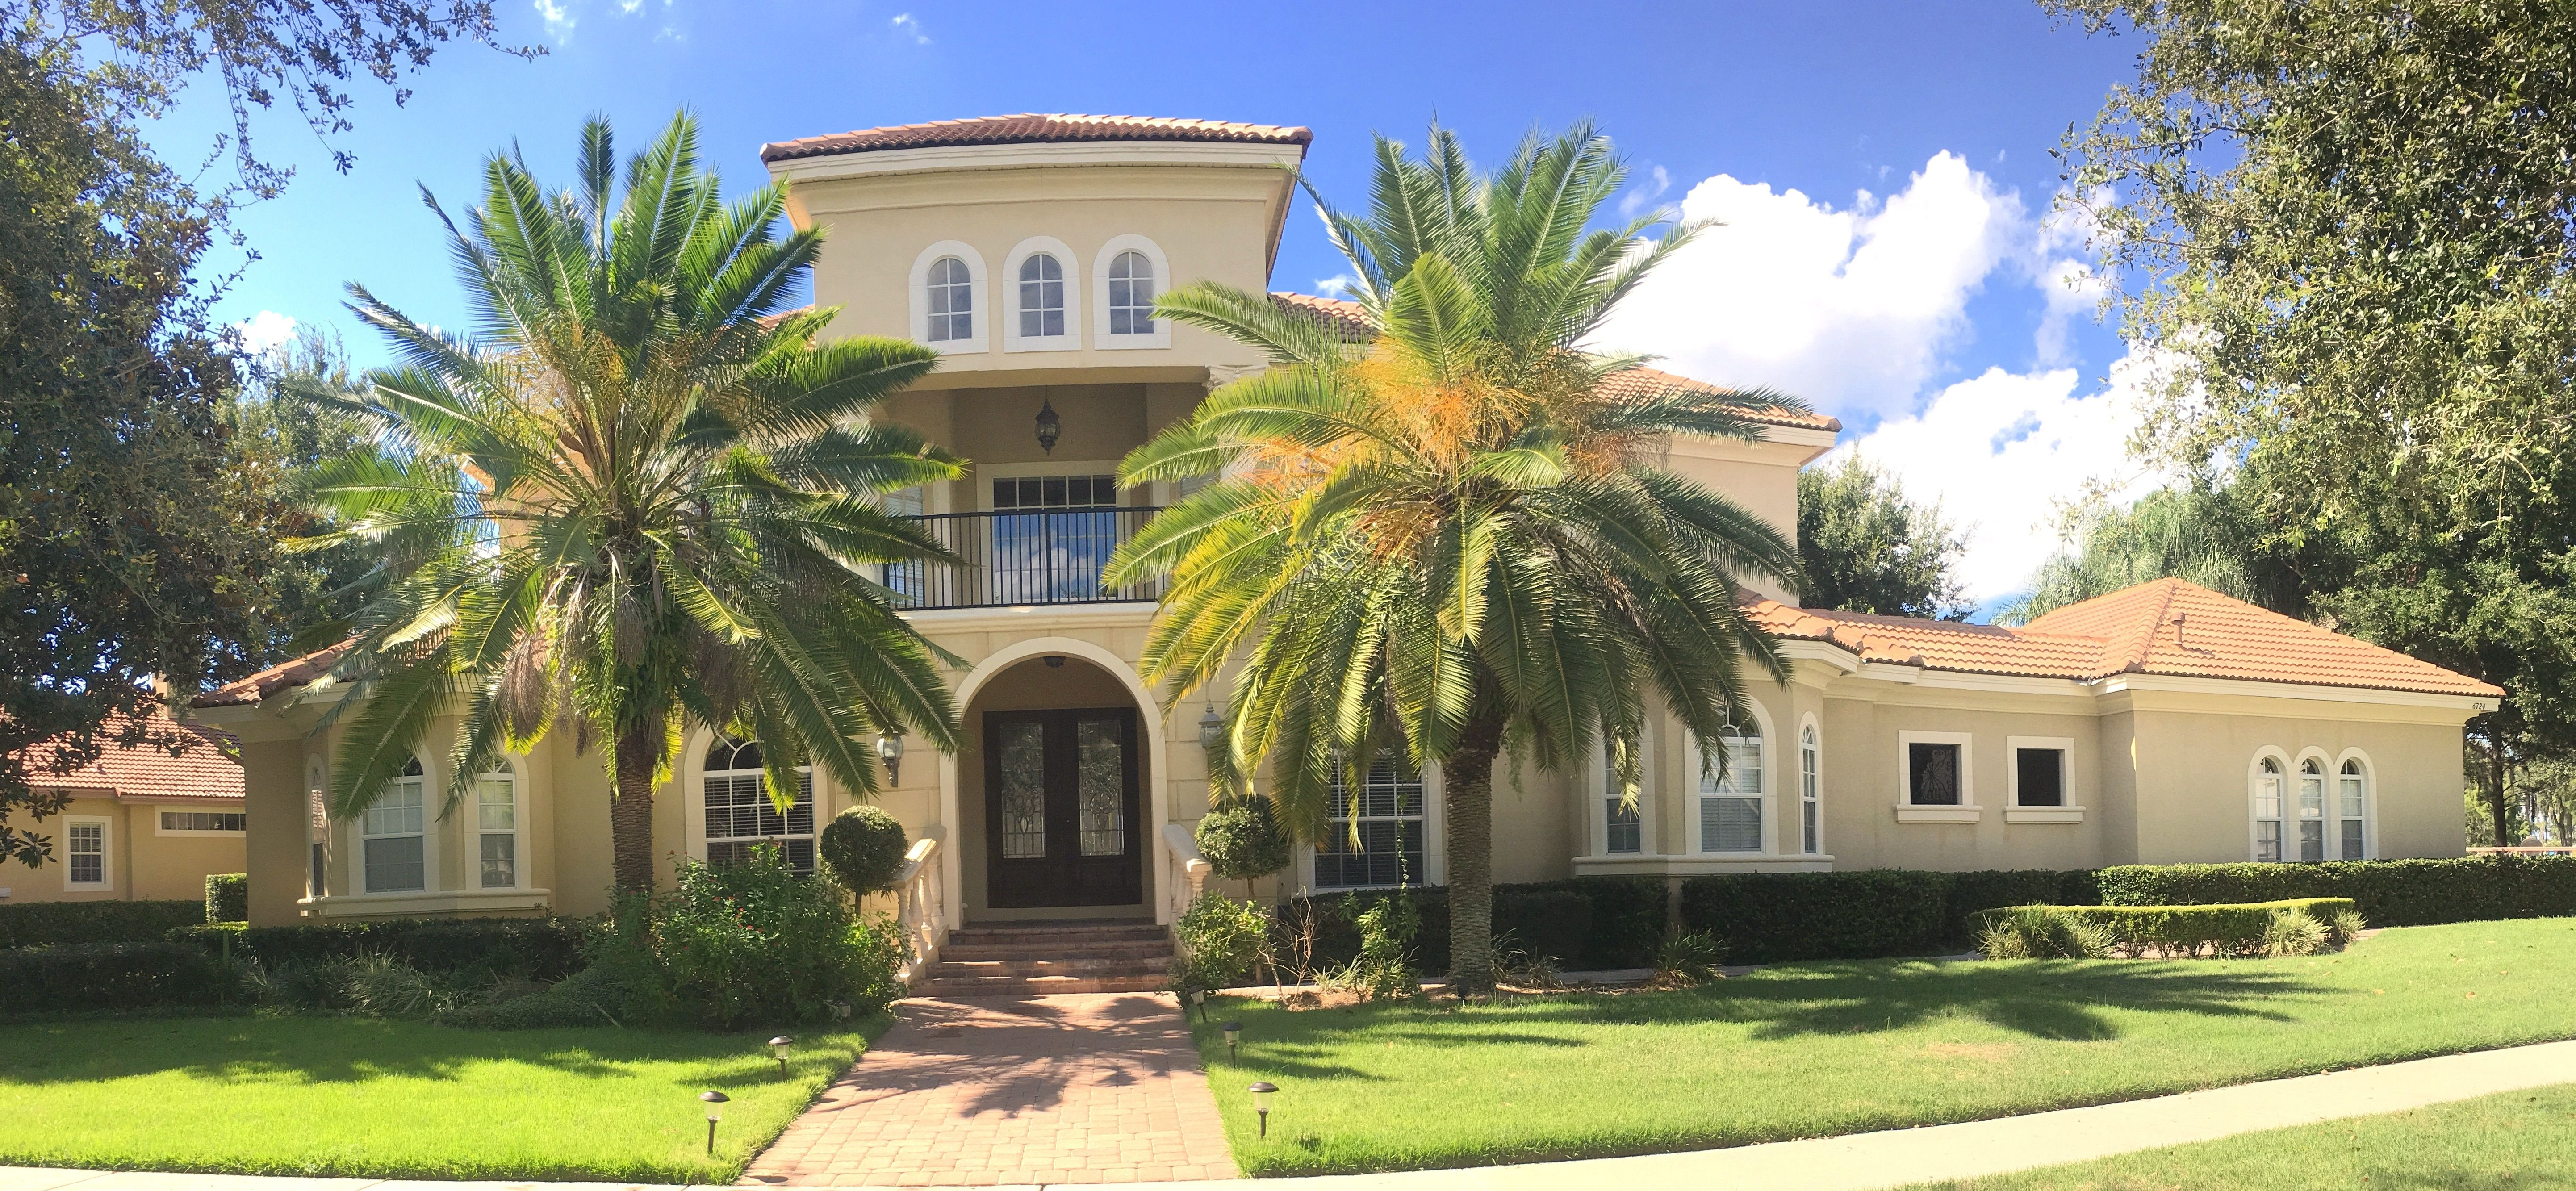 Another Beautiful Home We Pressure Washed In The #Windermere Area Of  #Orlando. We